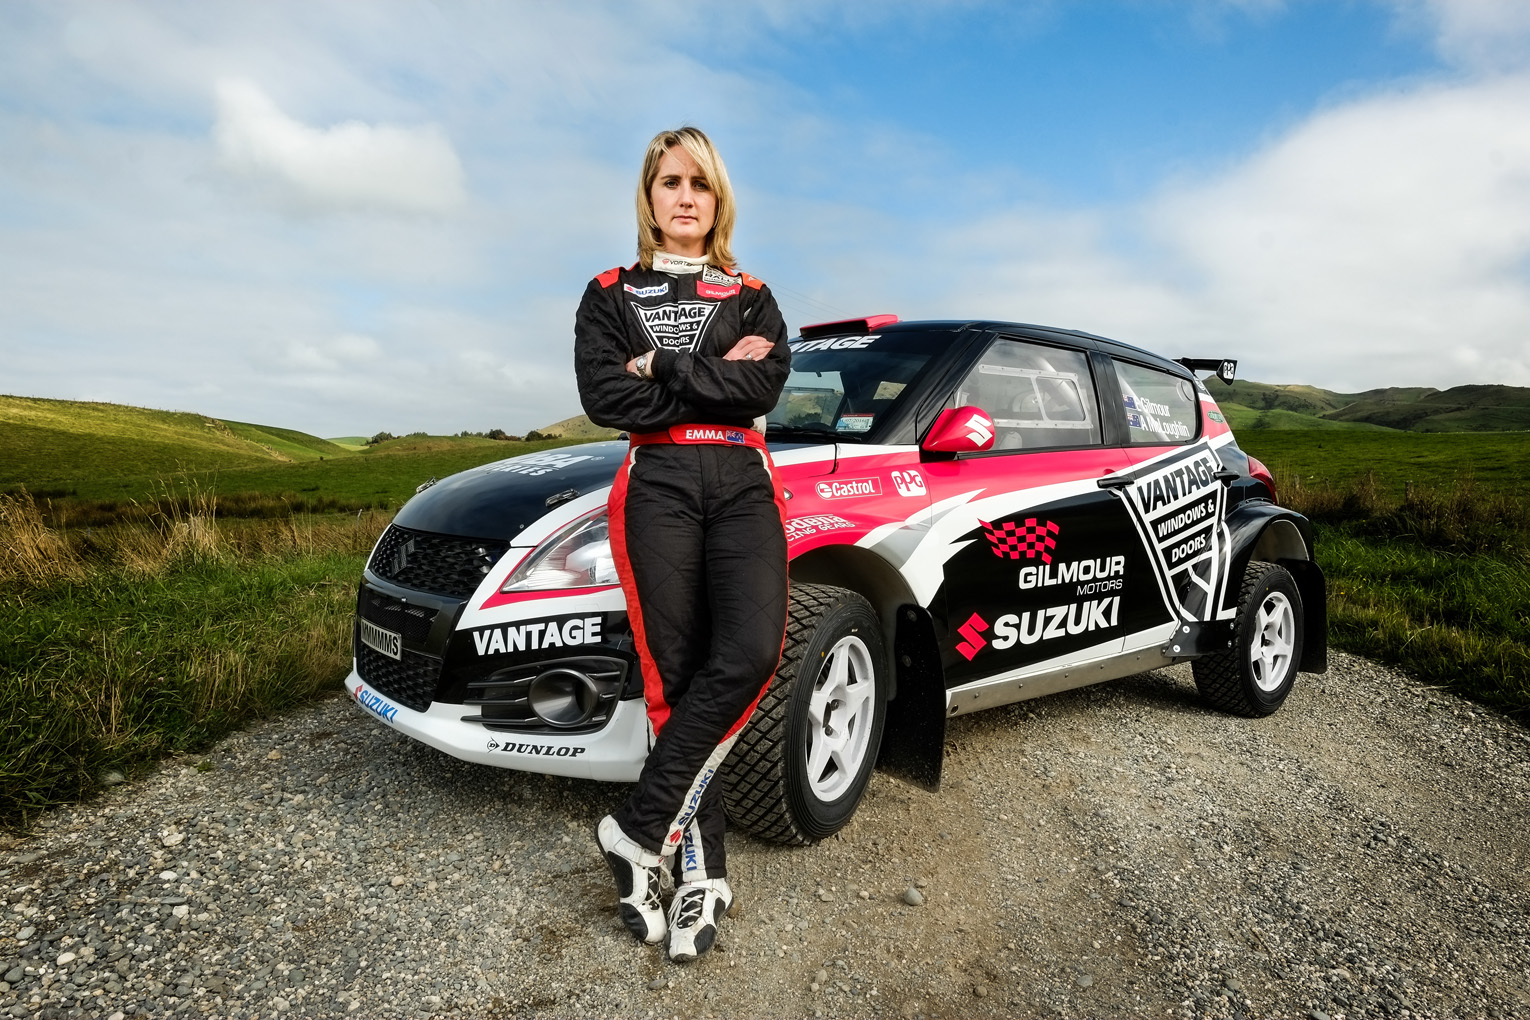 Gilmour looking for positive start to 2016